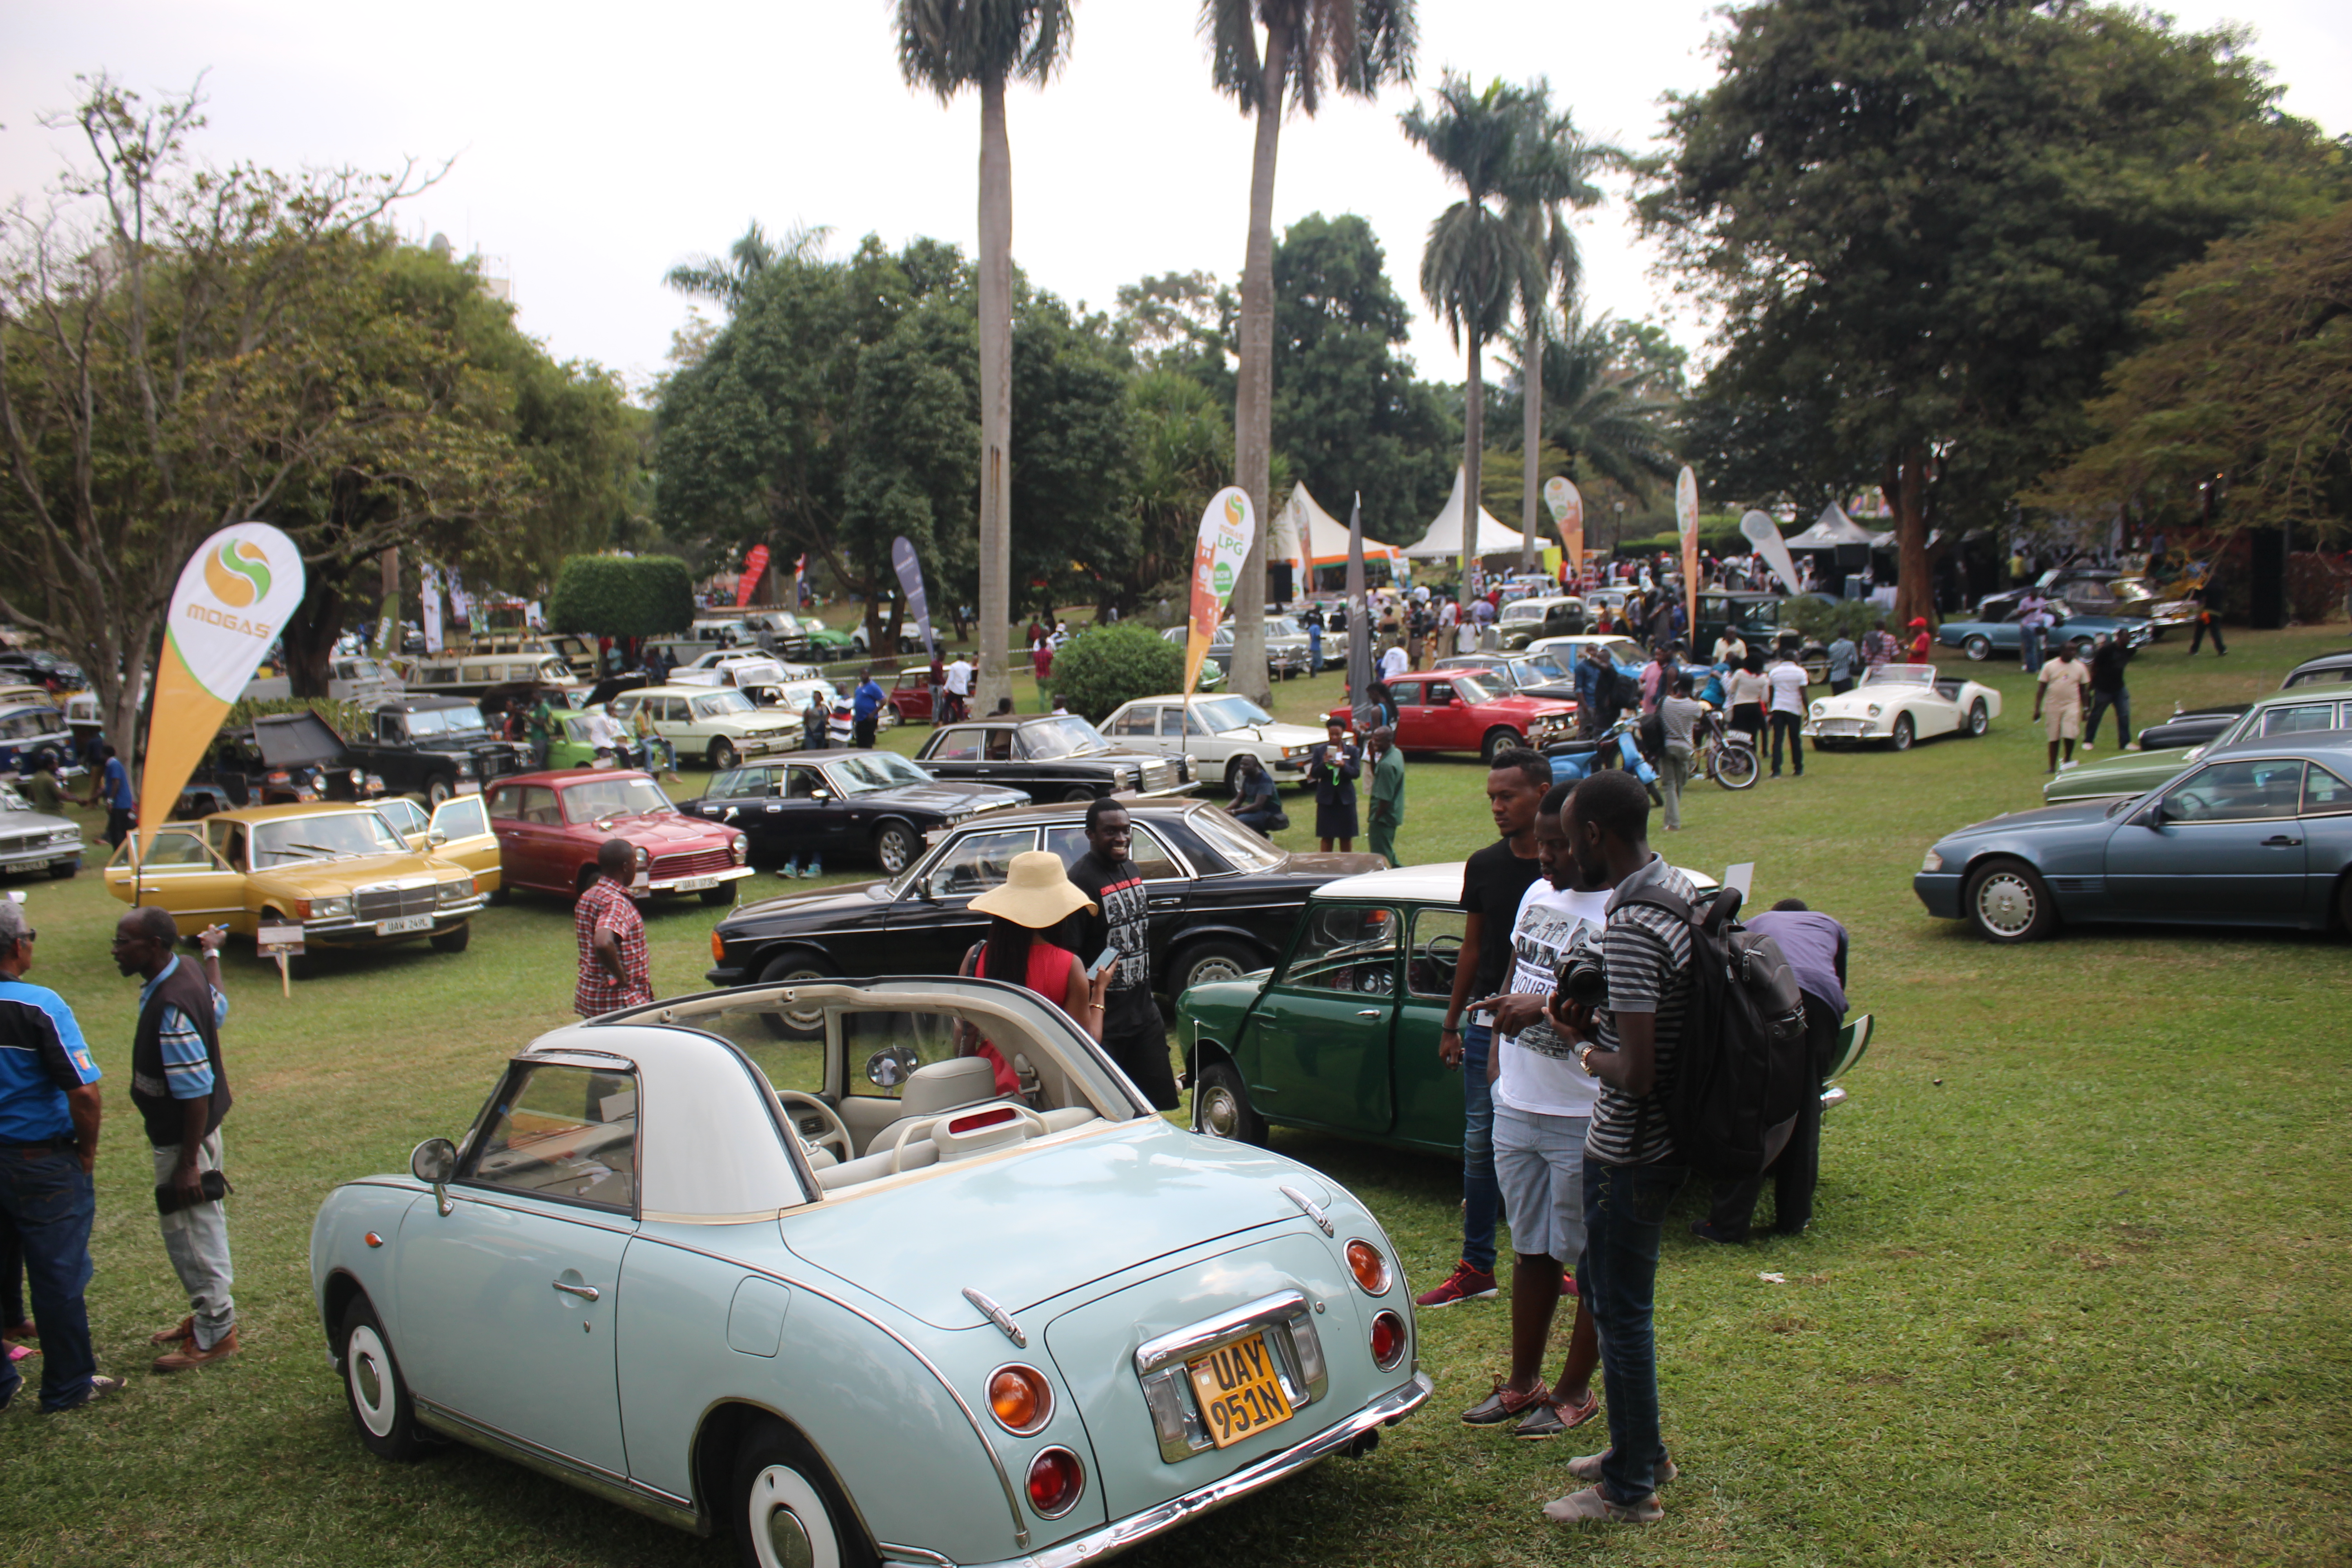 Photos: Vintage Car show brings back classics to life - Campus Bee